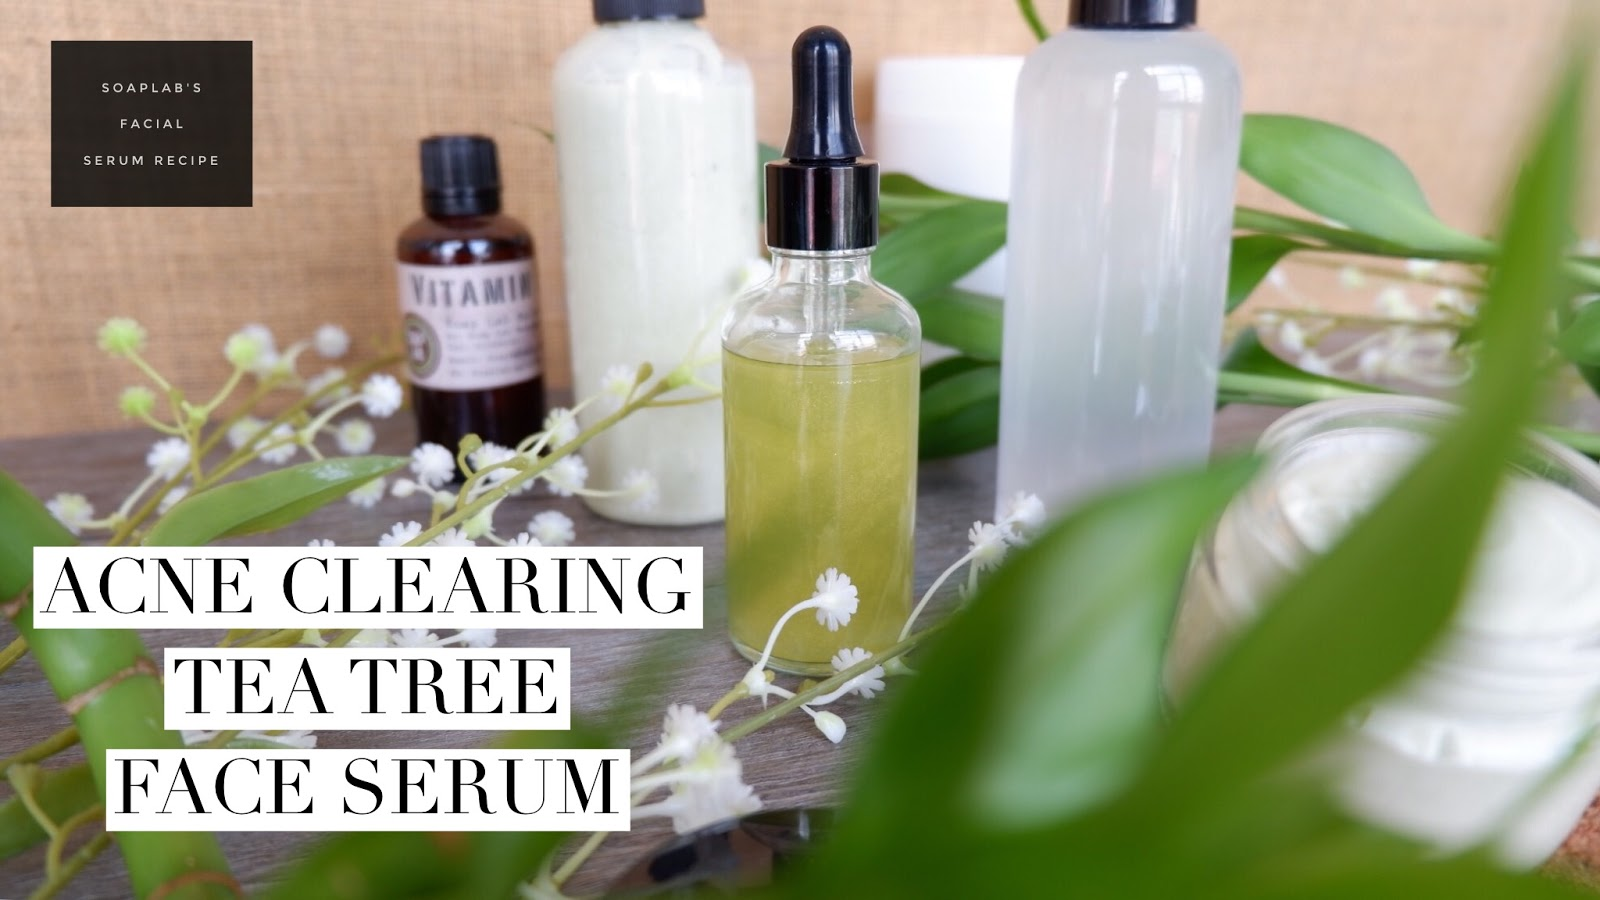 SoapLab Malaysia: How To Make: Anti Acne Face Serum Using